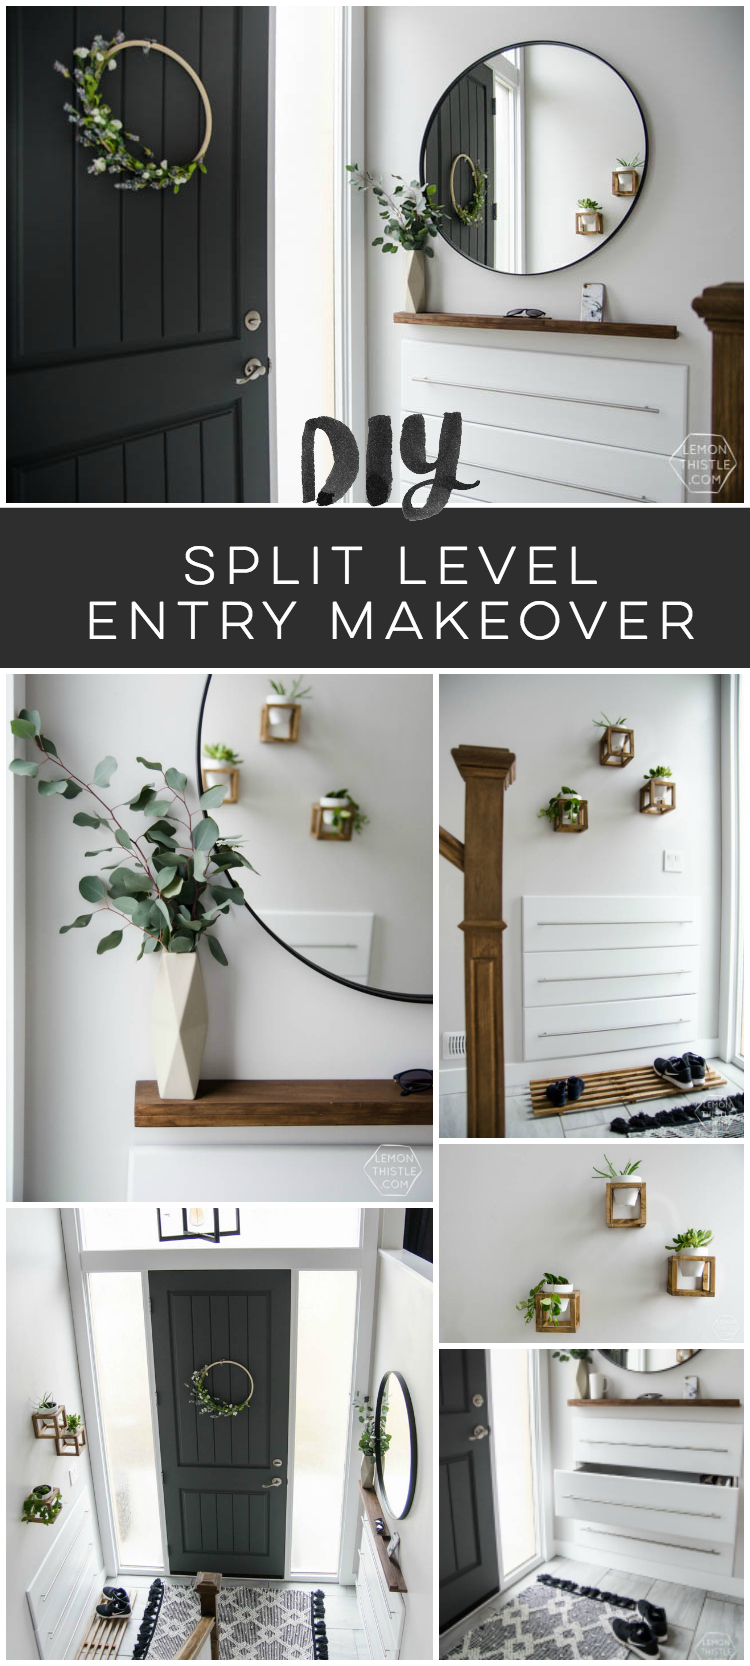 A diy split level entry makeover before after lemon thistle - Level a house decor ...